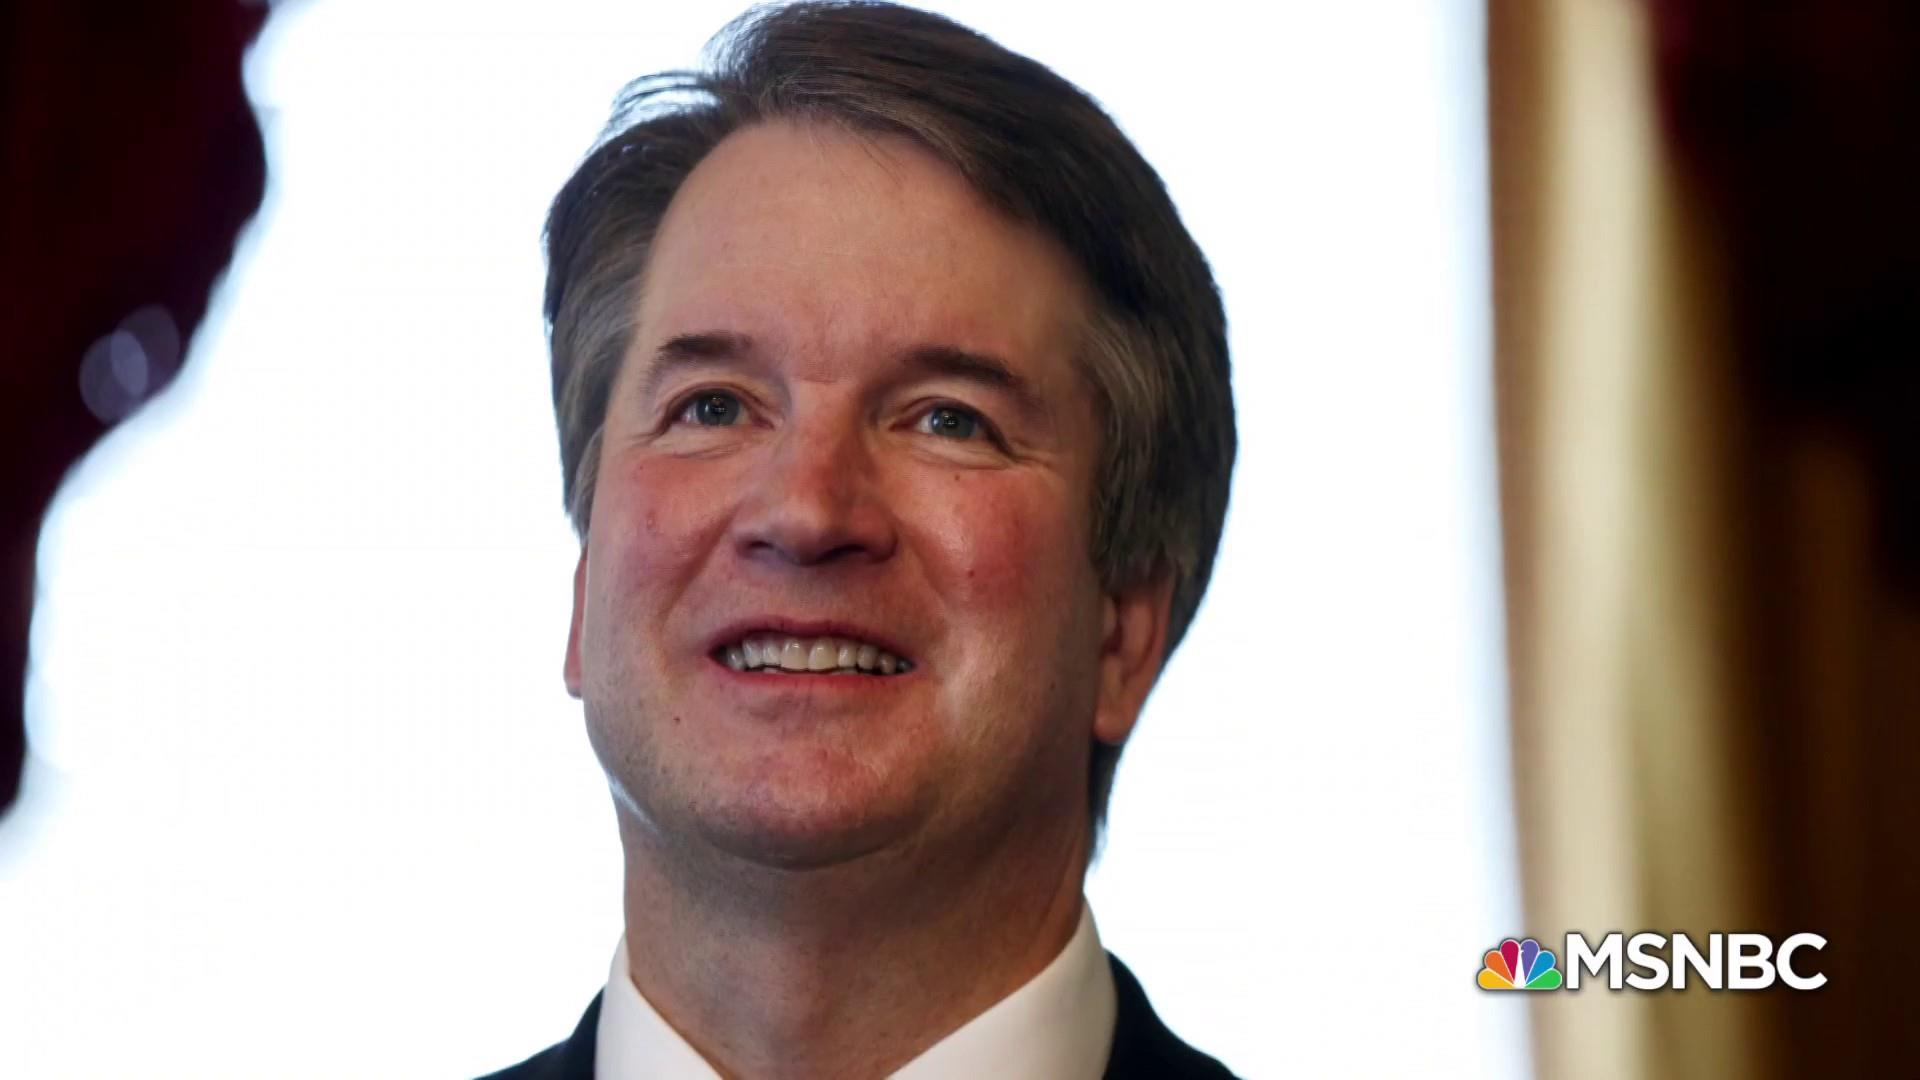 Karine Jean-Pierre: Kavanaugh nomination puts everything on the line